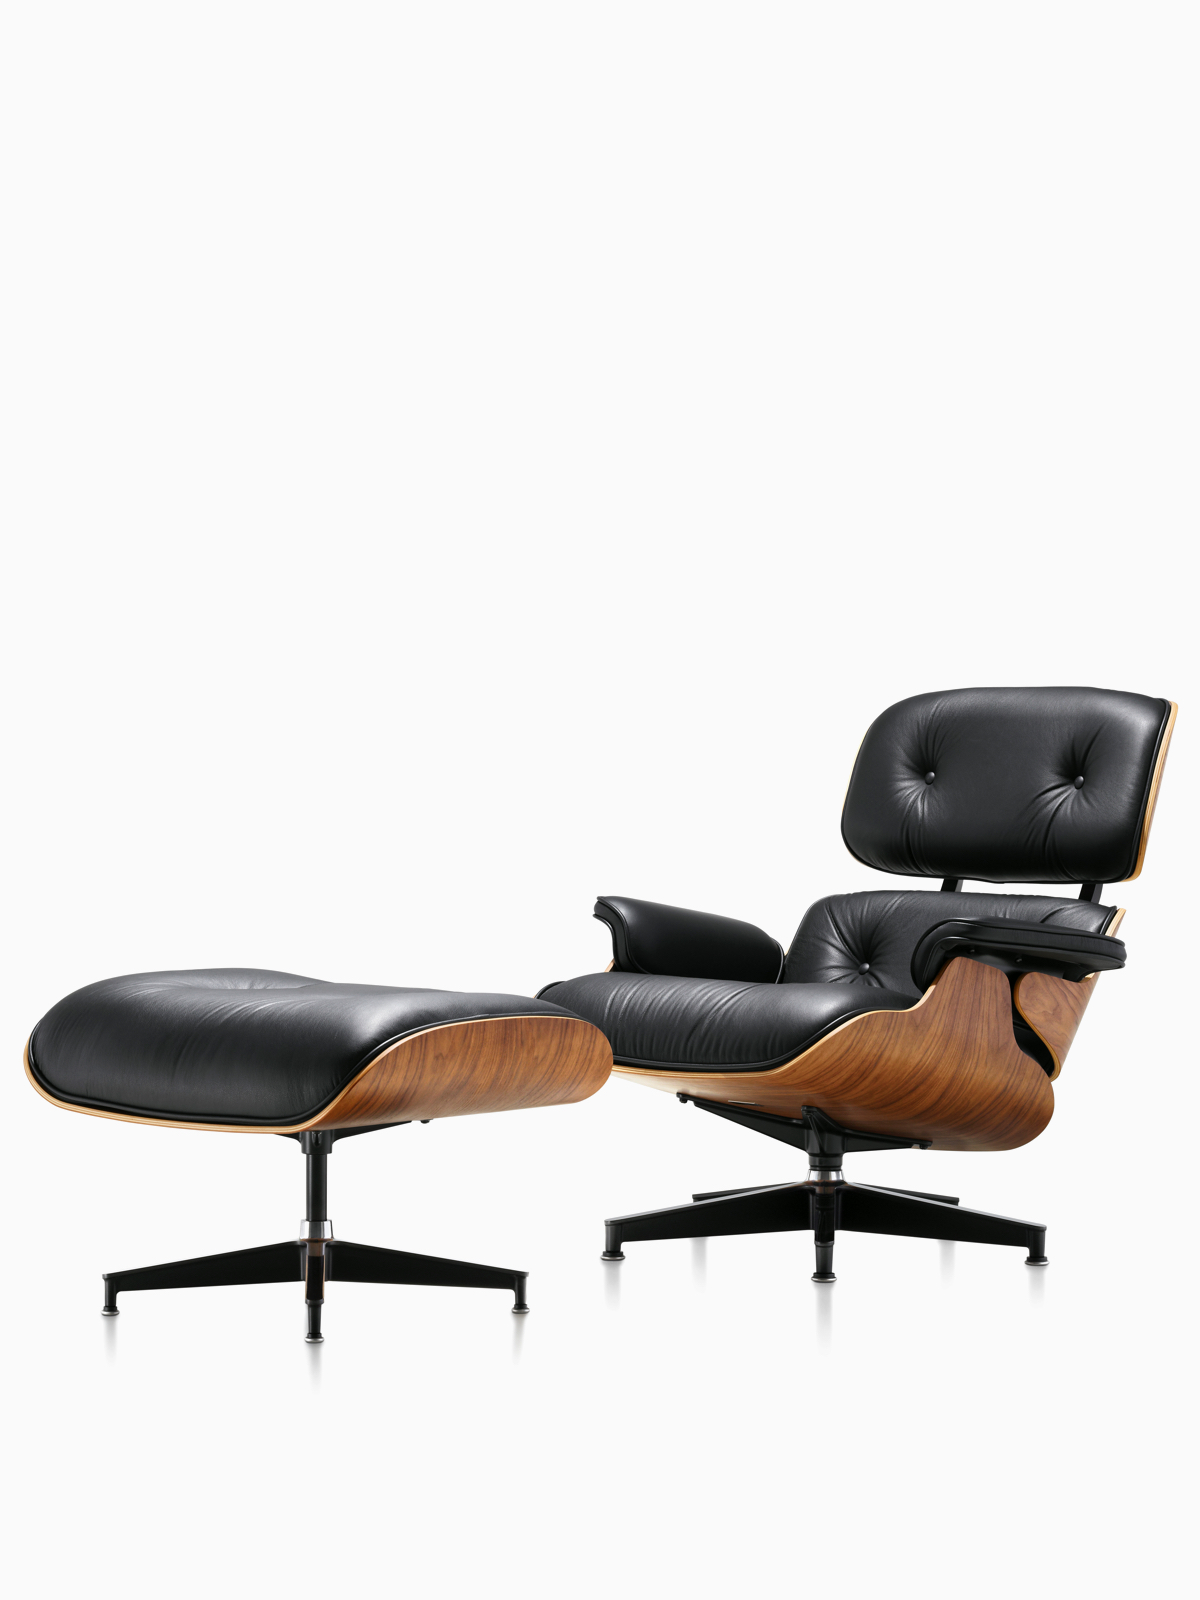 Eames Lounge Chair Zubehör Eames Lounge And Ottoman Lounge Chair Herman Miller